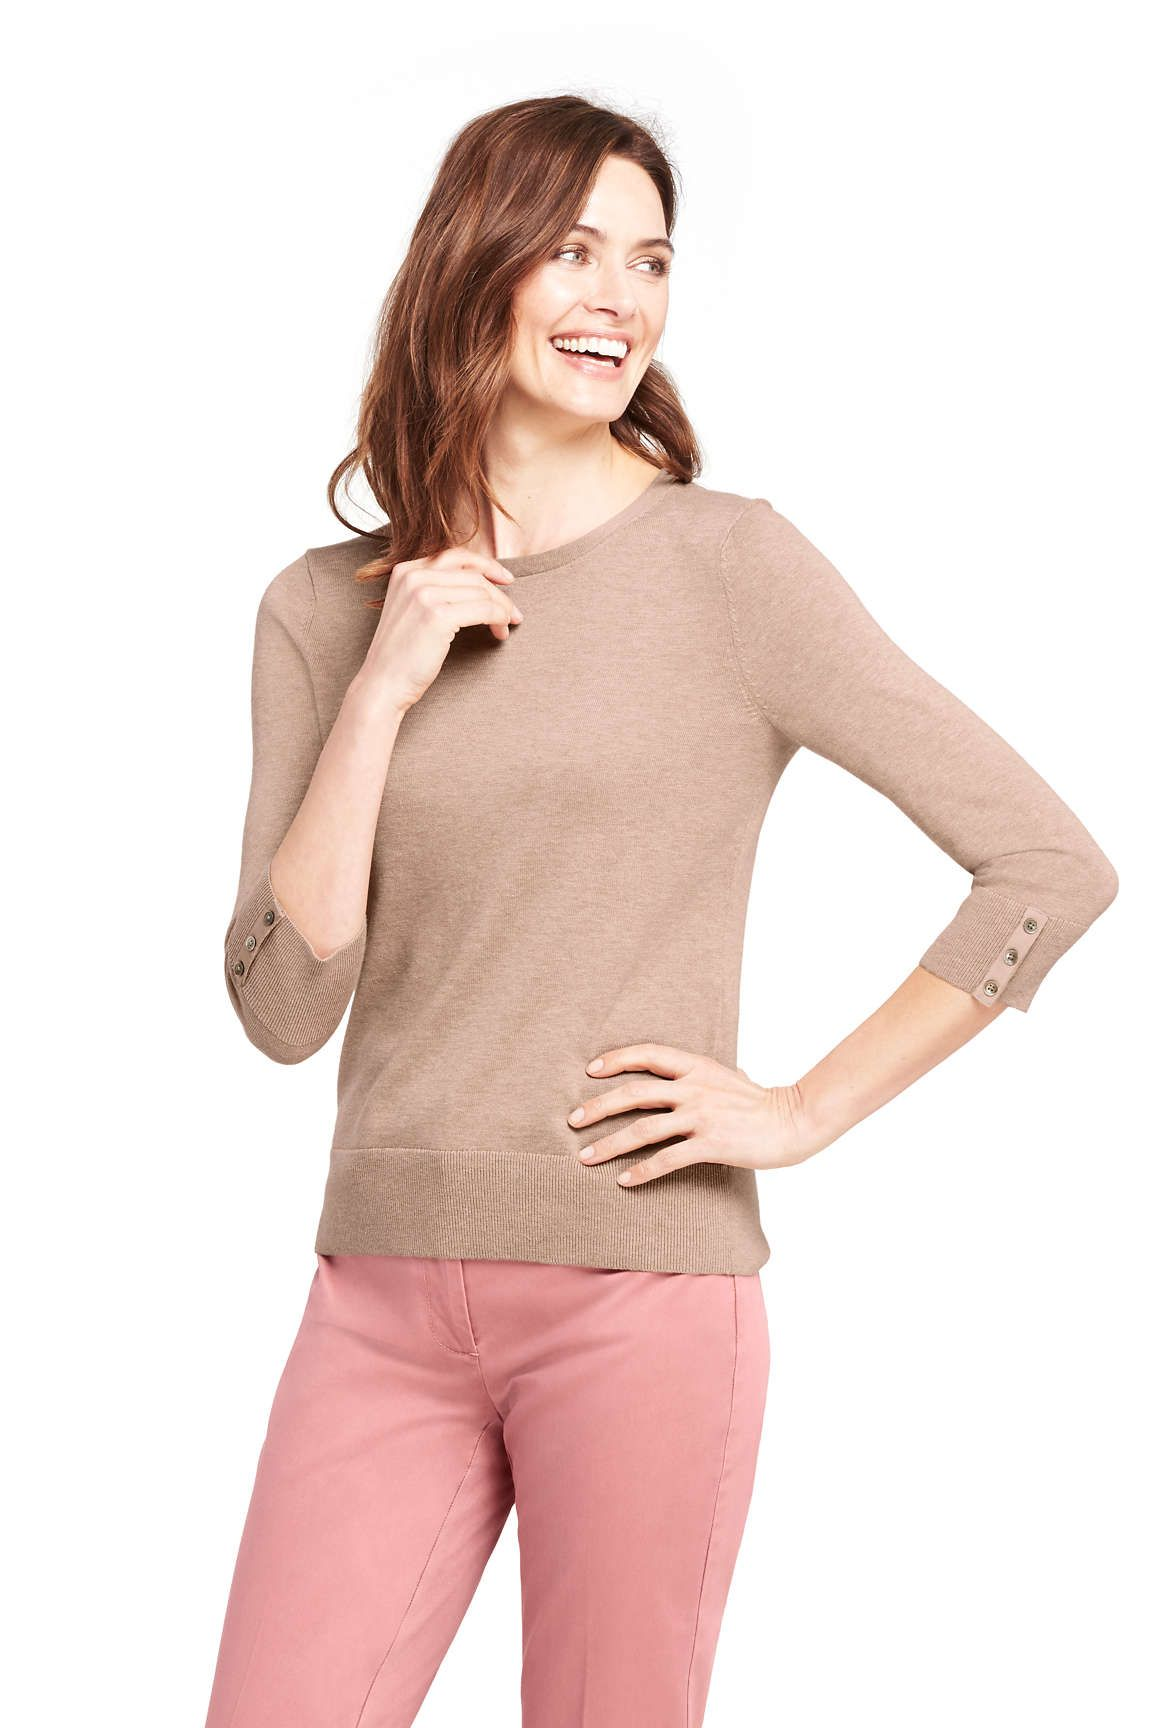 aa450a34eb6 Women's Supima Cotton 3/4 Sleeve Sweater from Lands' End | Fashion ...